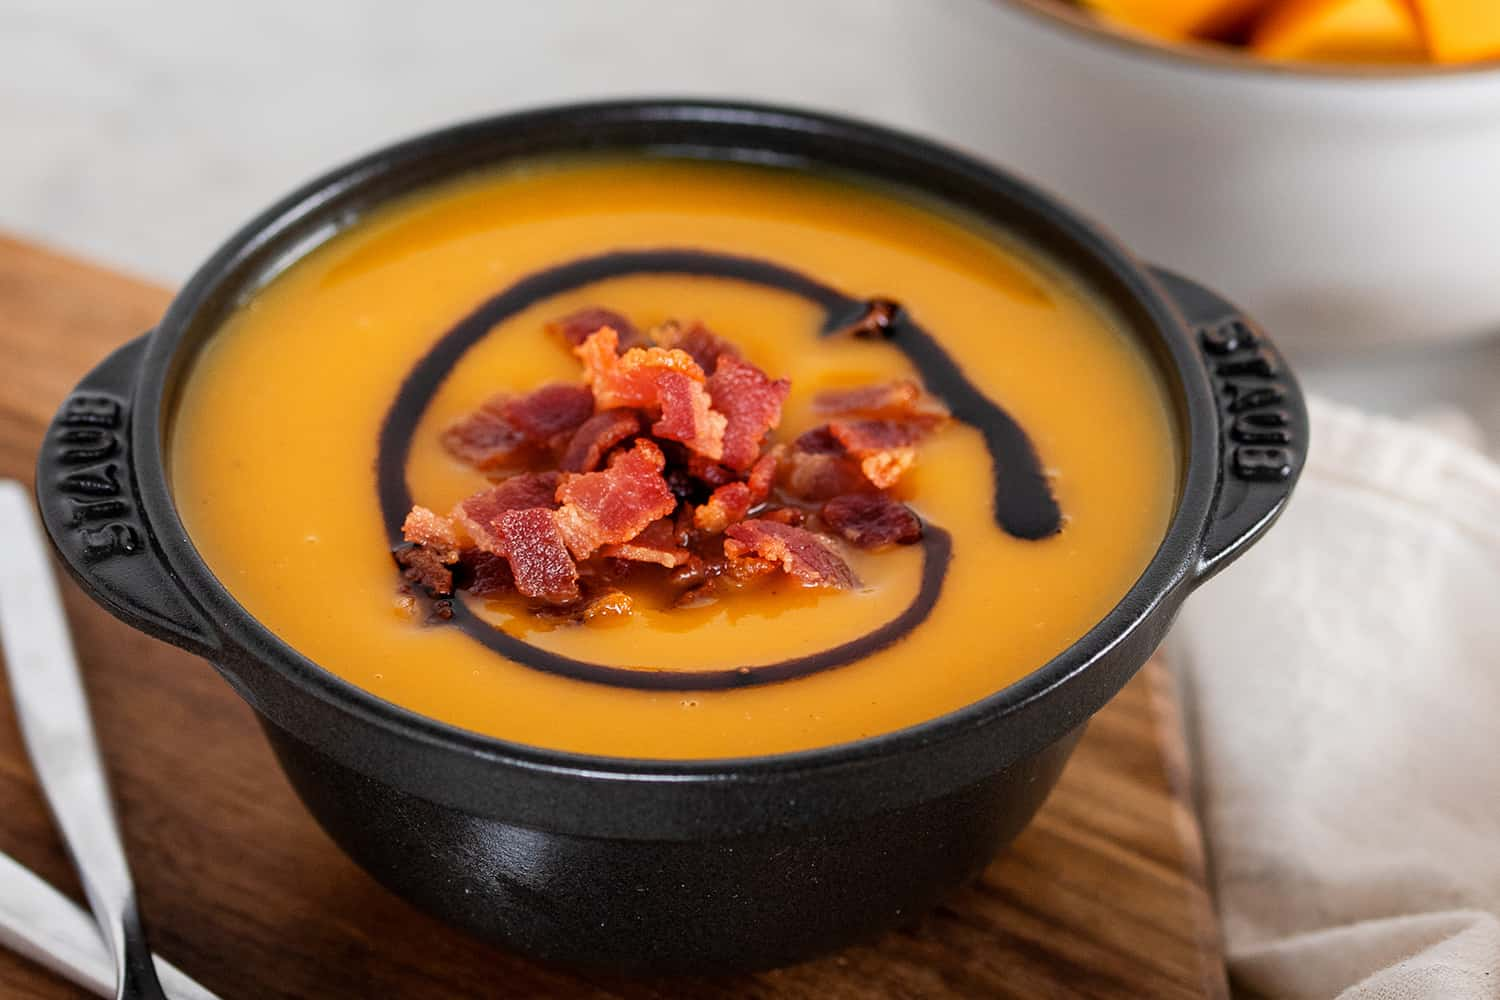 A closeup of a black bowl filled with Instant Pot Butternut Squash Soup, topped with crispy bacon bits and aged balsamic vinegar.